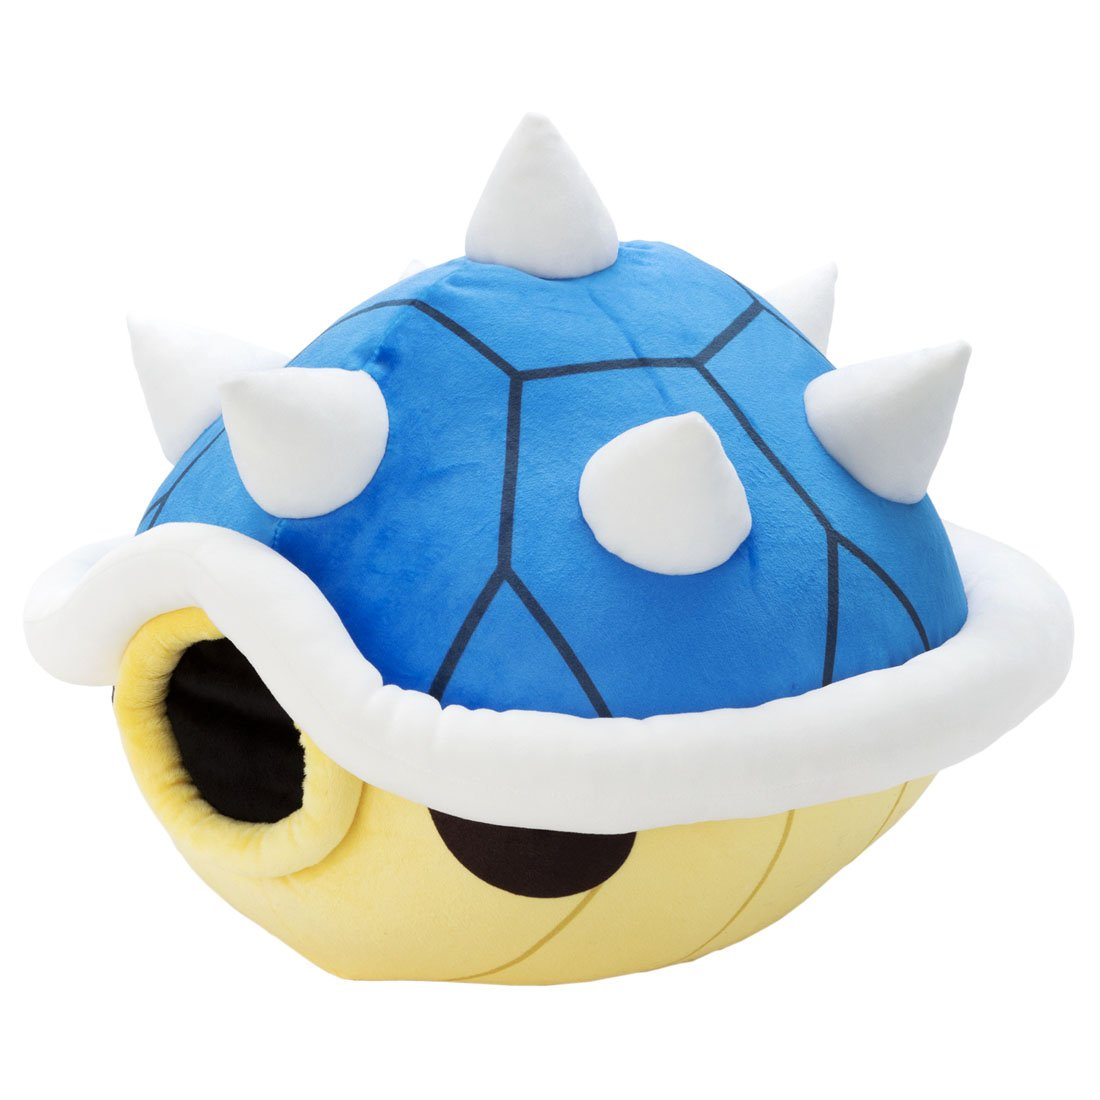 Mario Kart Club Mocchi-Mocchi- Blue Shell Plush Stuffed Toy